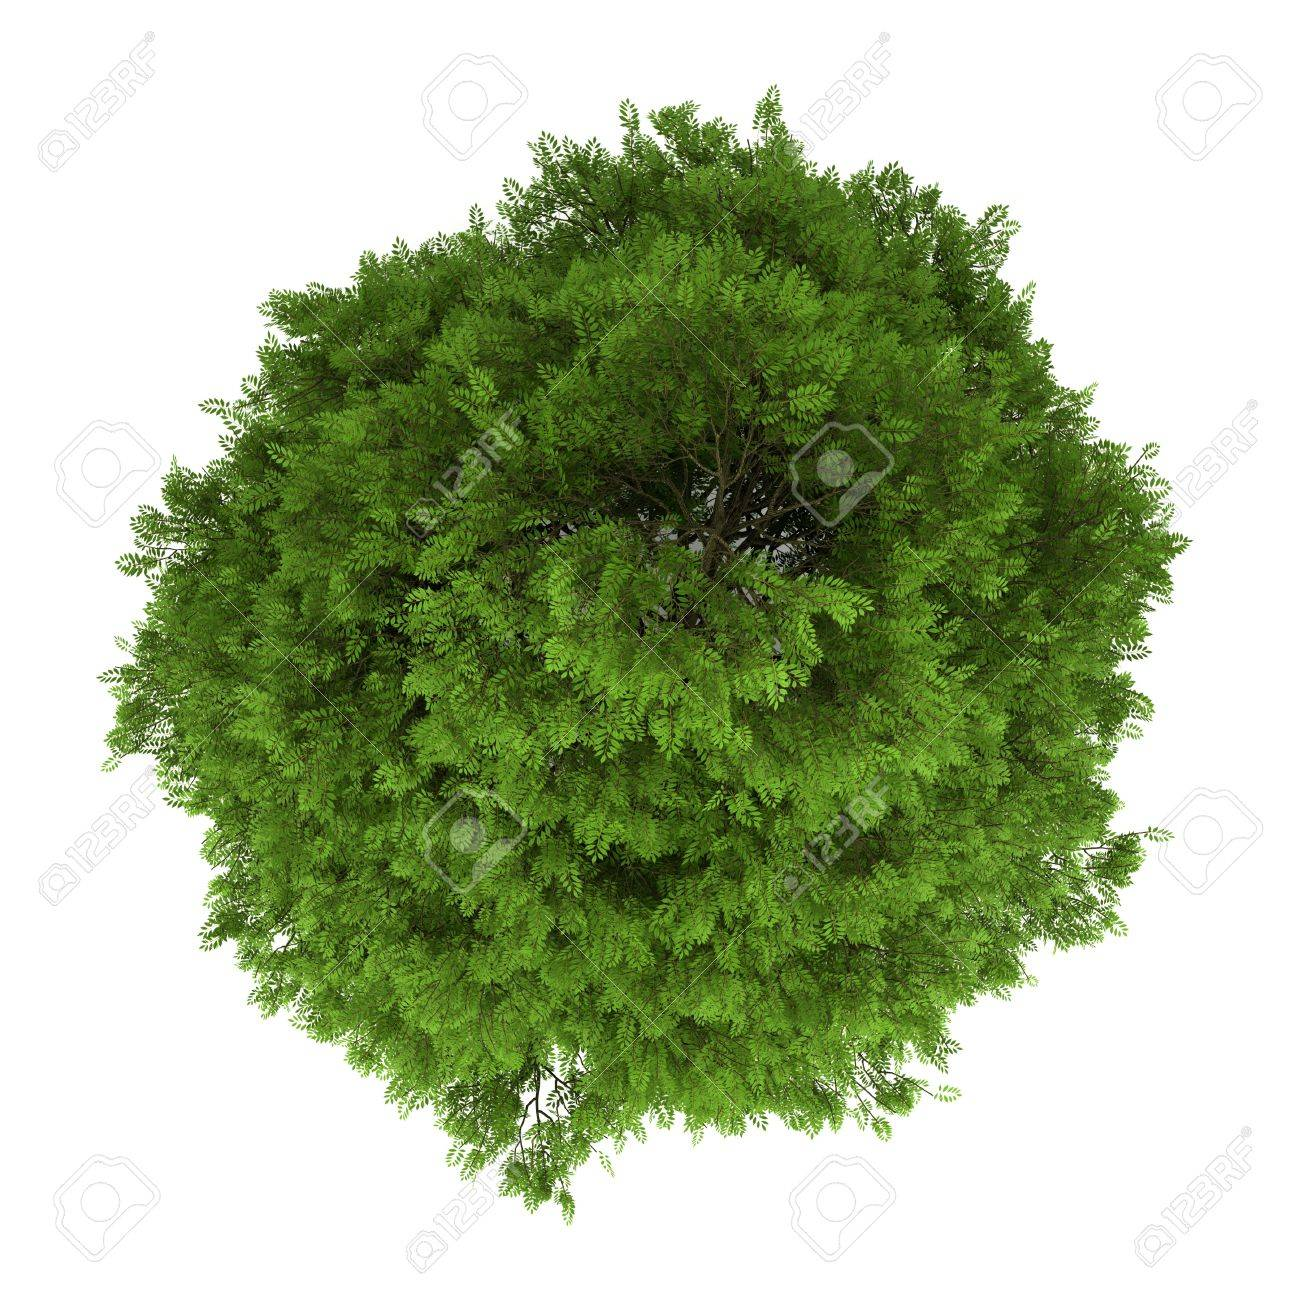 top view of tree of heaven isolated on white background Stock Photo - 15012447